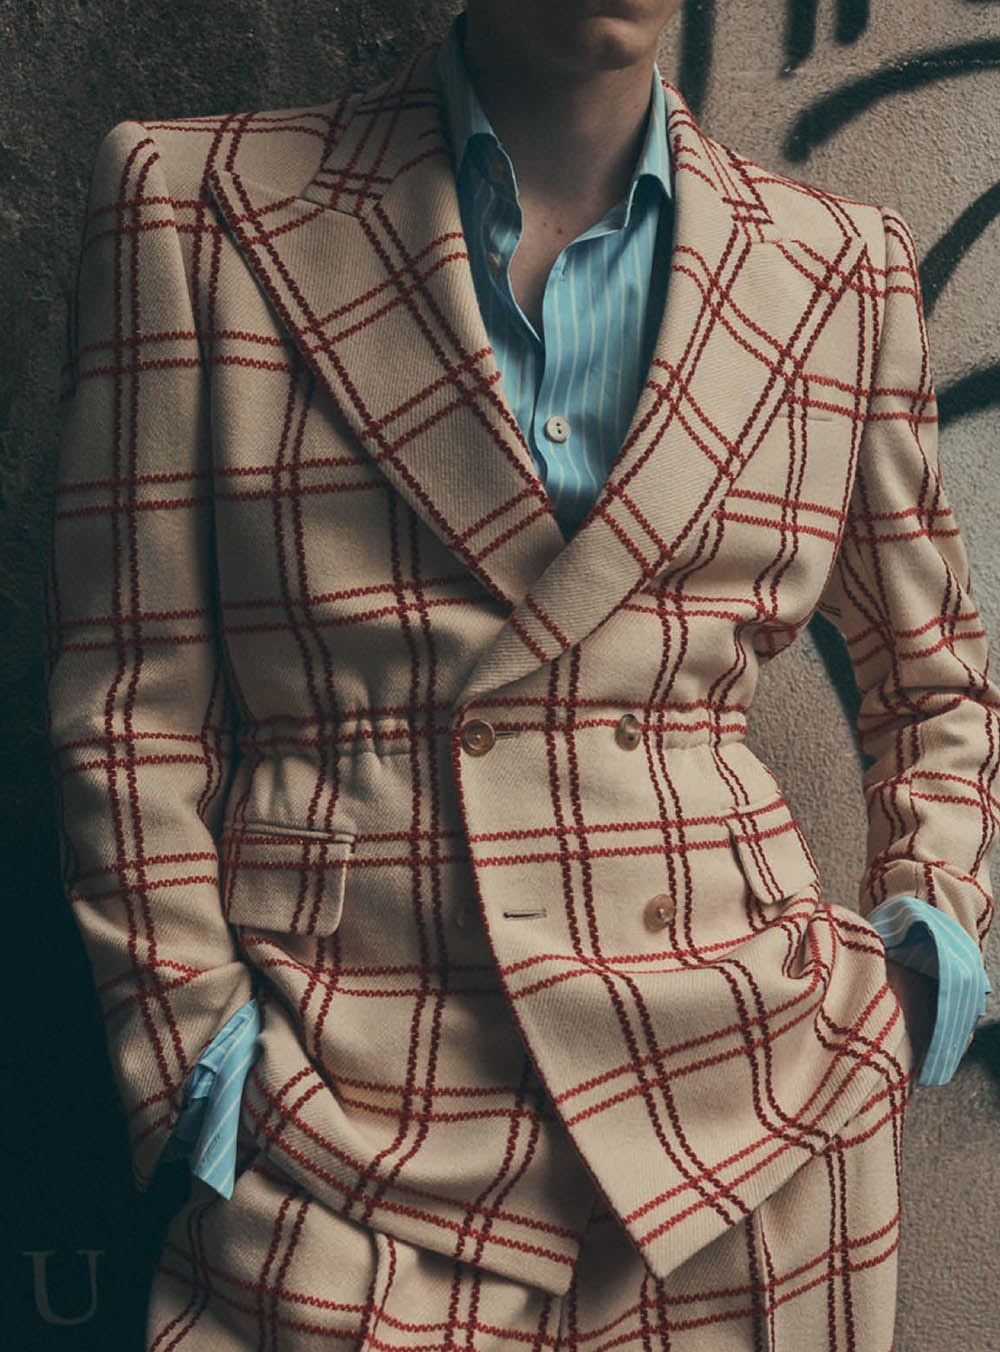 Leigh Kimmins by Stefano Galuzzi for GQ Spain December 2019